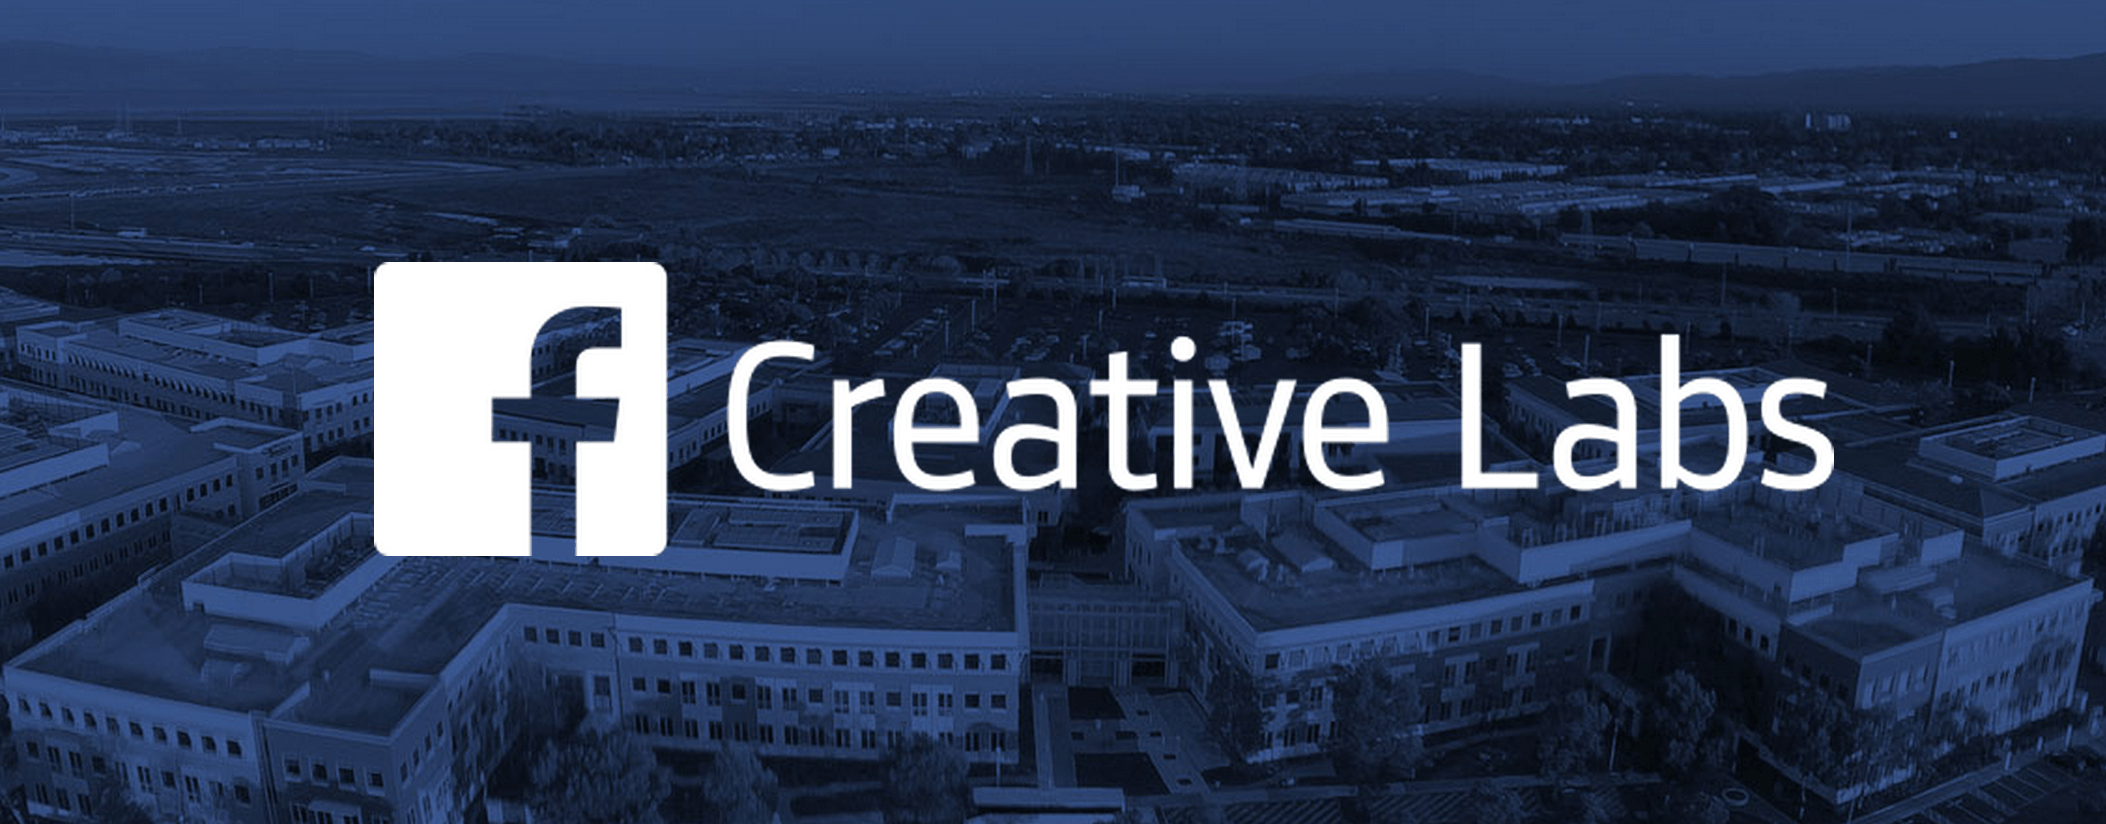 Facebook To Shut Down Creative Labs, Riff